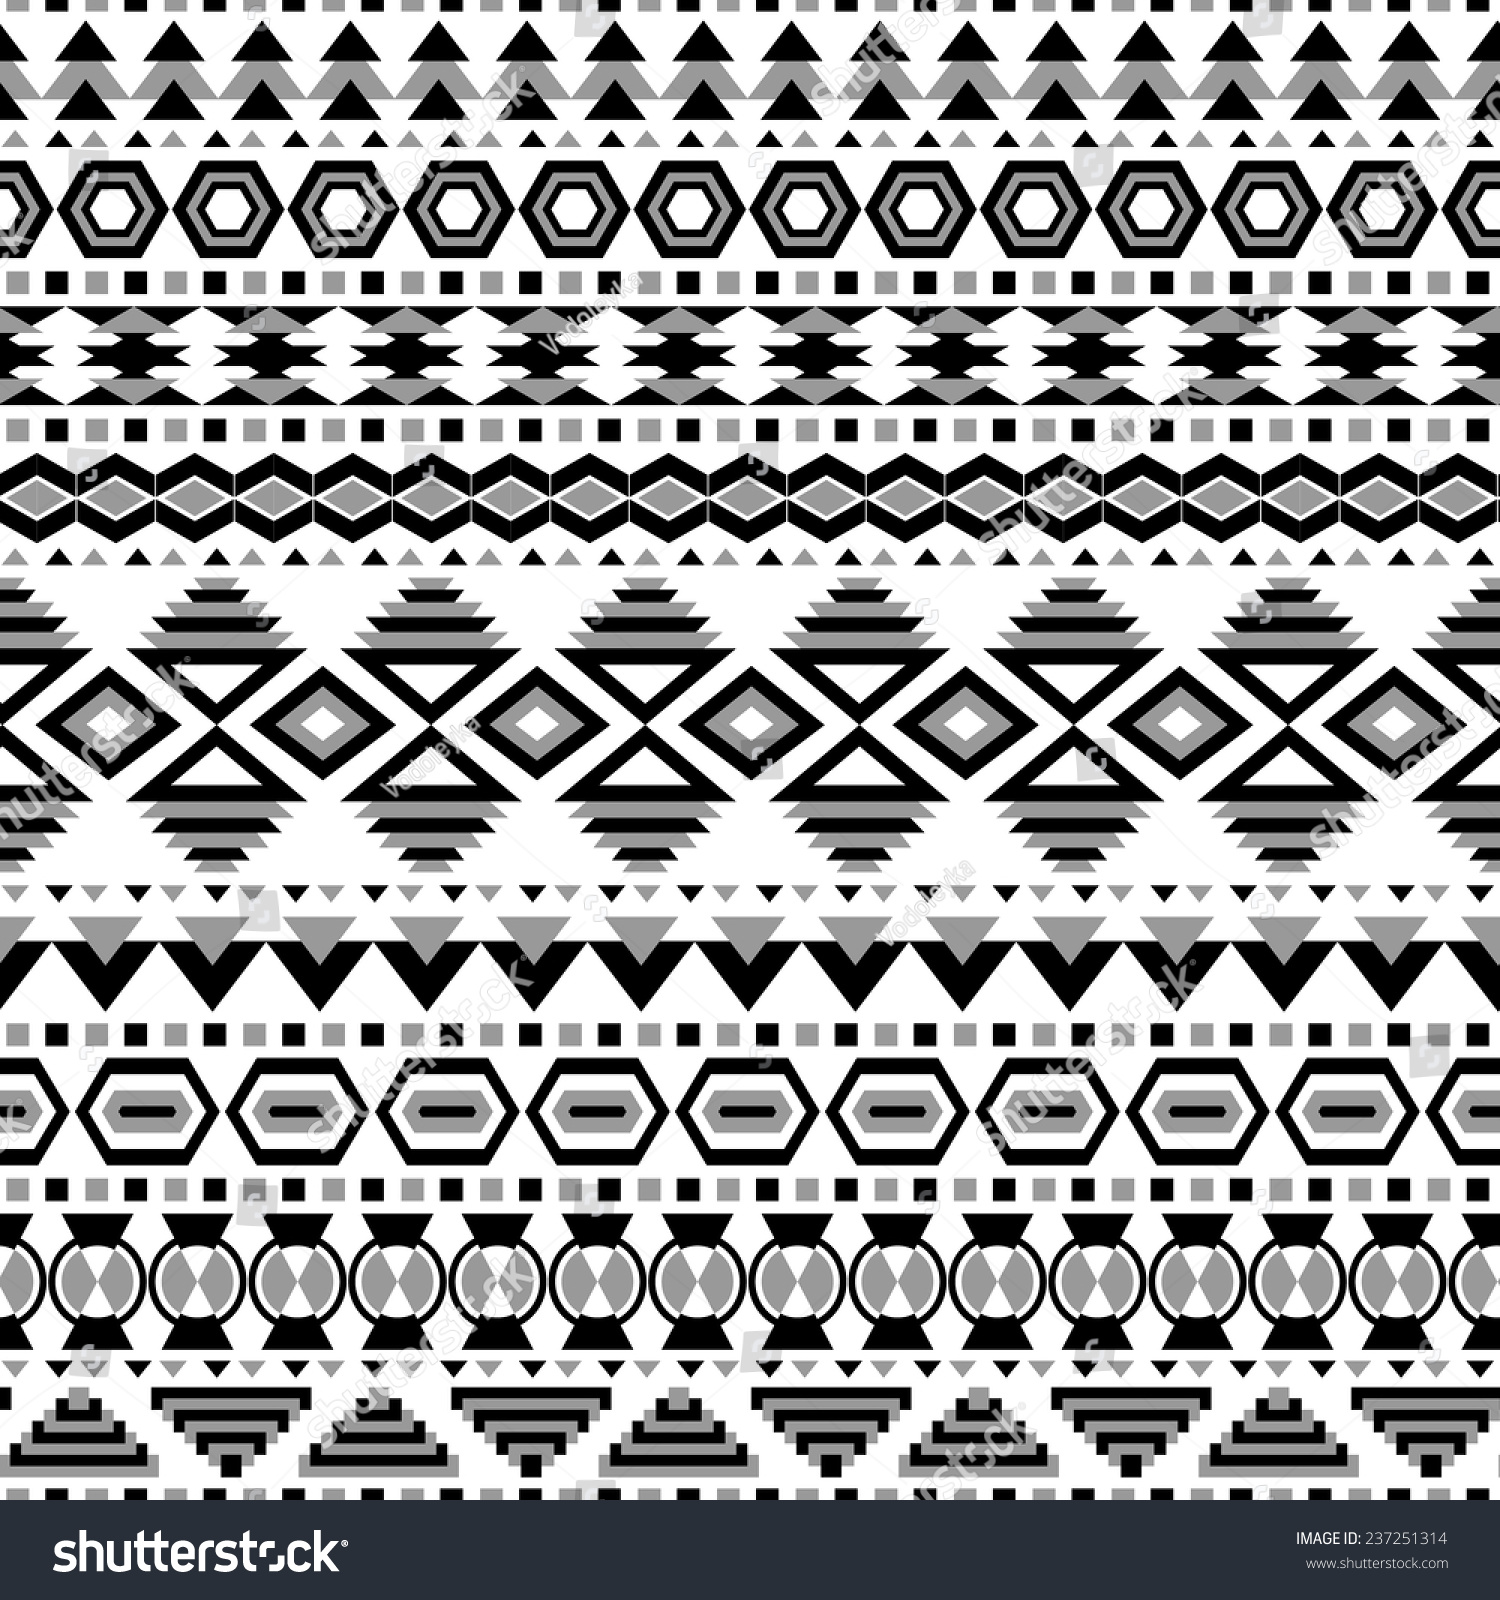 Ethnic Seamless Pattern Aztec Blackwhite - 728.5KB